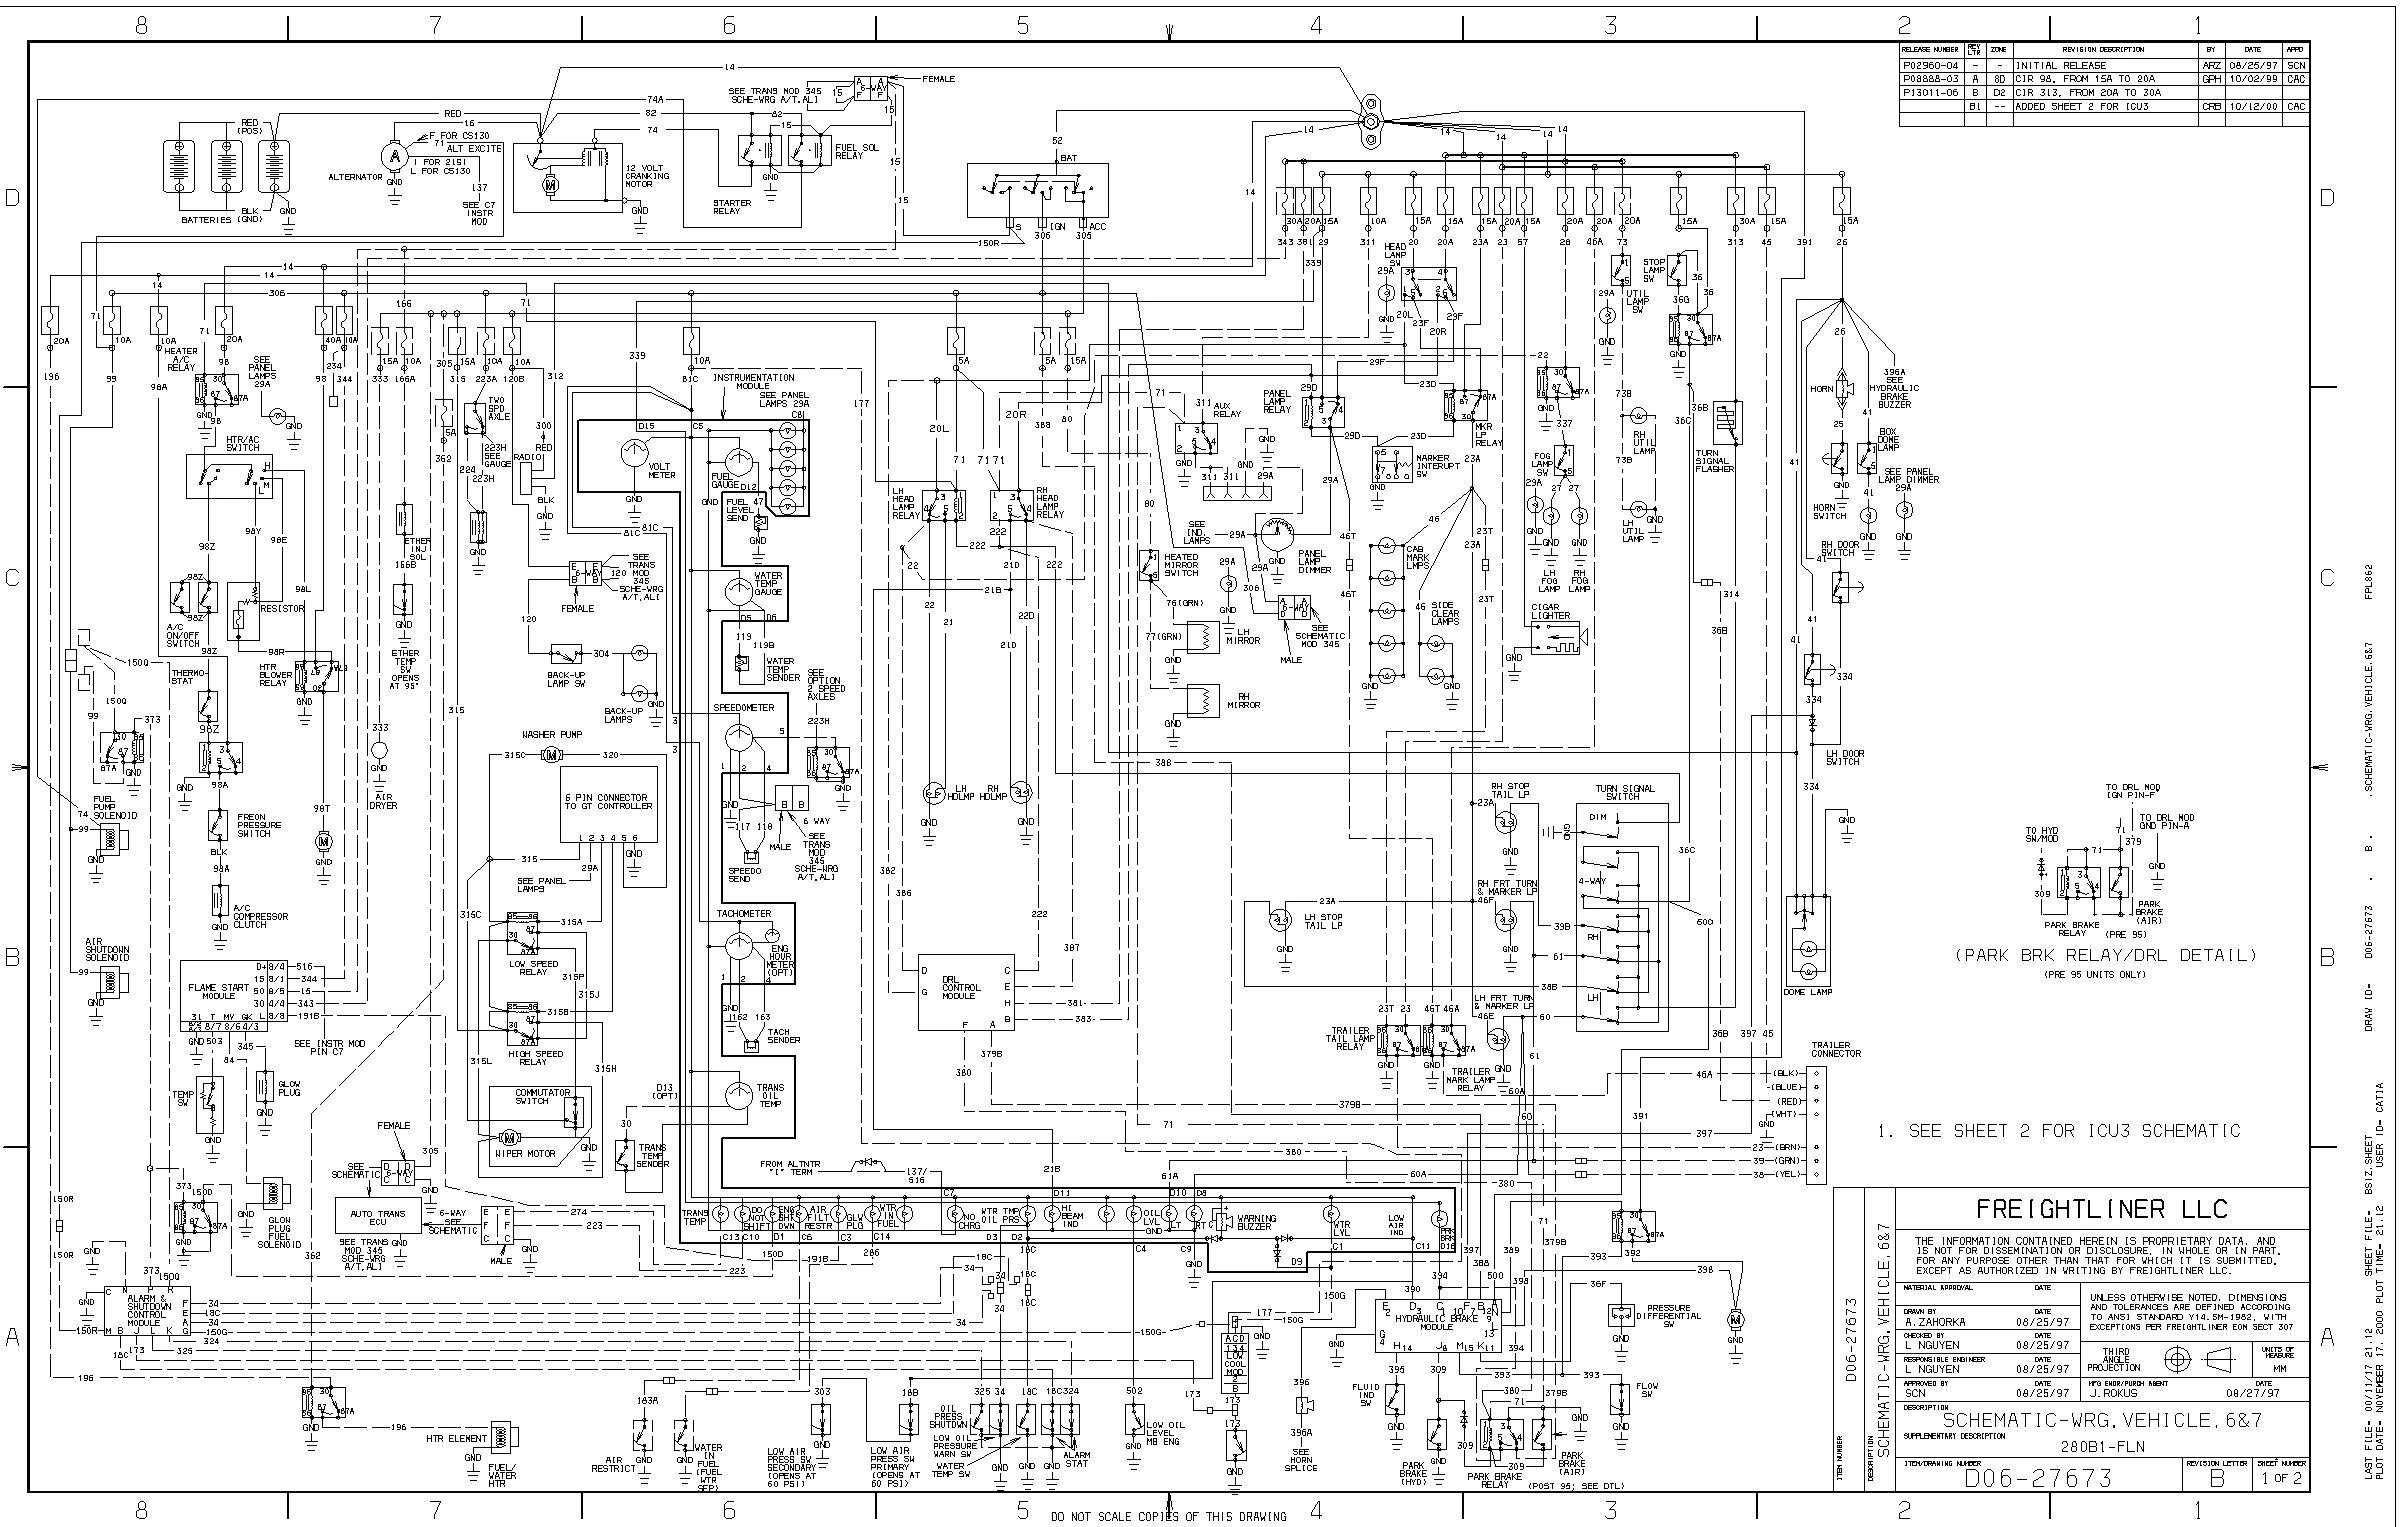 2007 Sterling Truck Wiring Diagram Sterling L9500 Fuse Box Layout Schematics Wiring Data • Of 2007 Sterling Truck Wiring Diagram